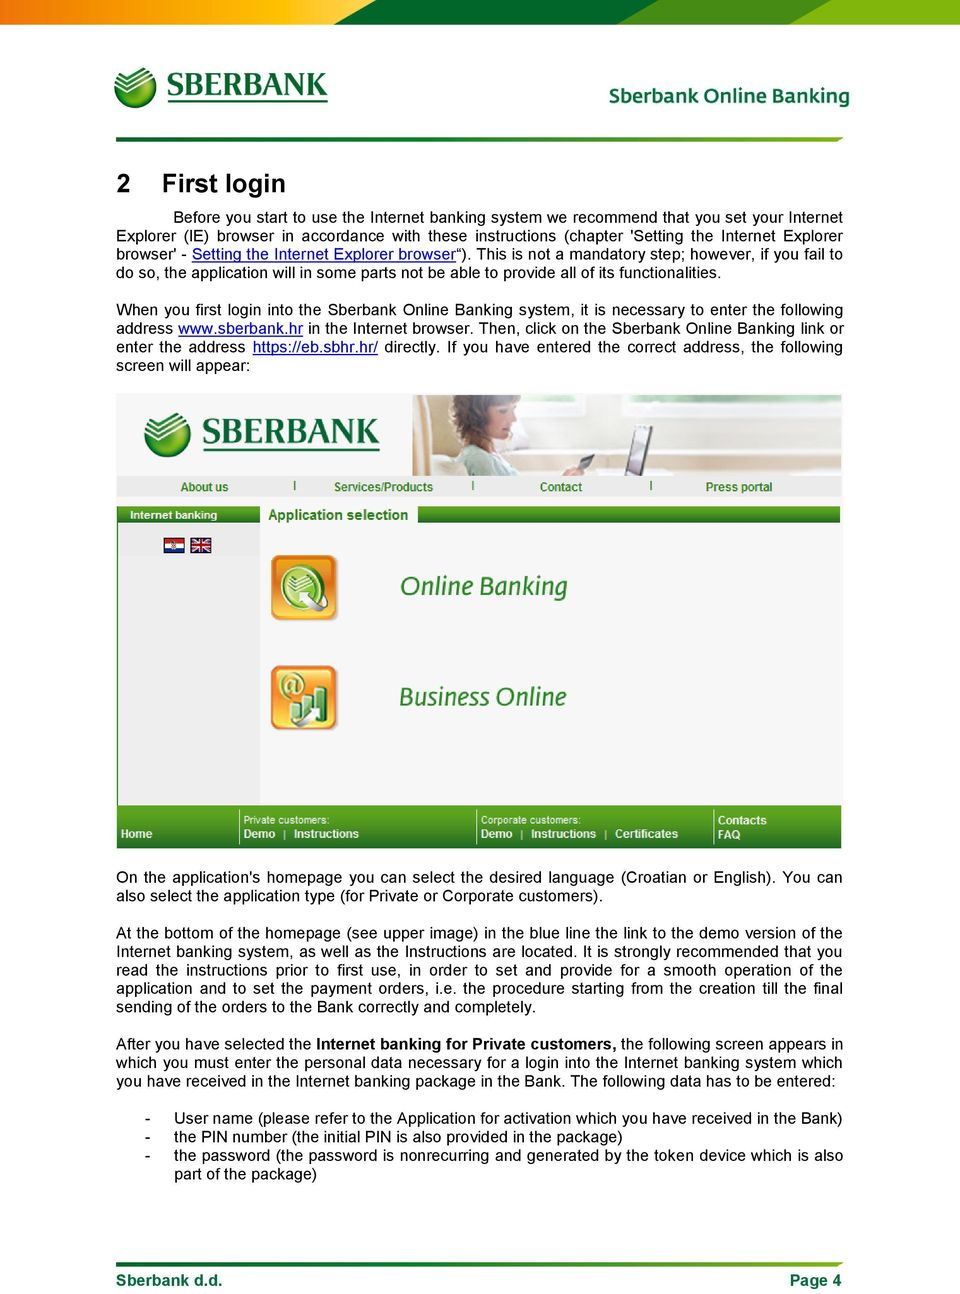 How to use Sberbank Online